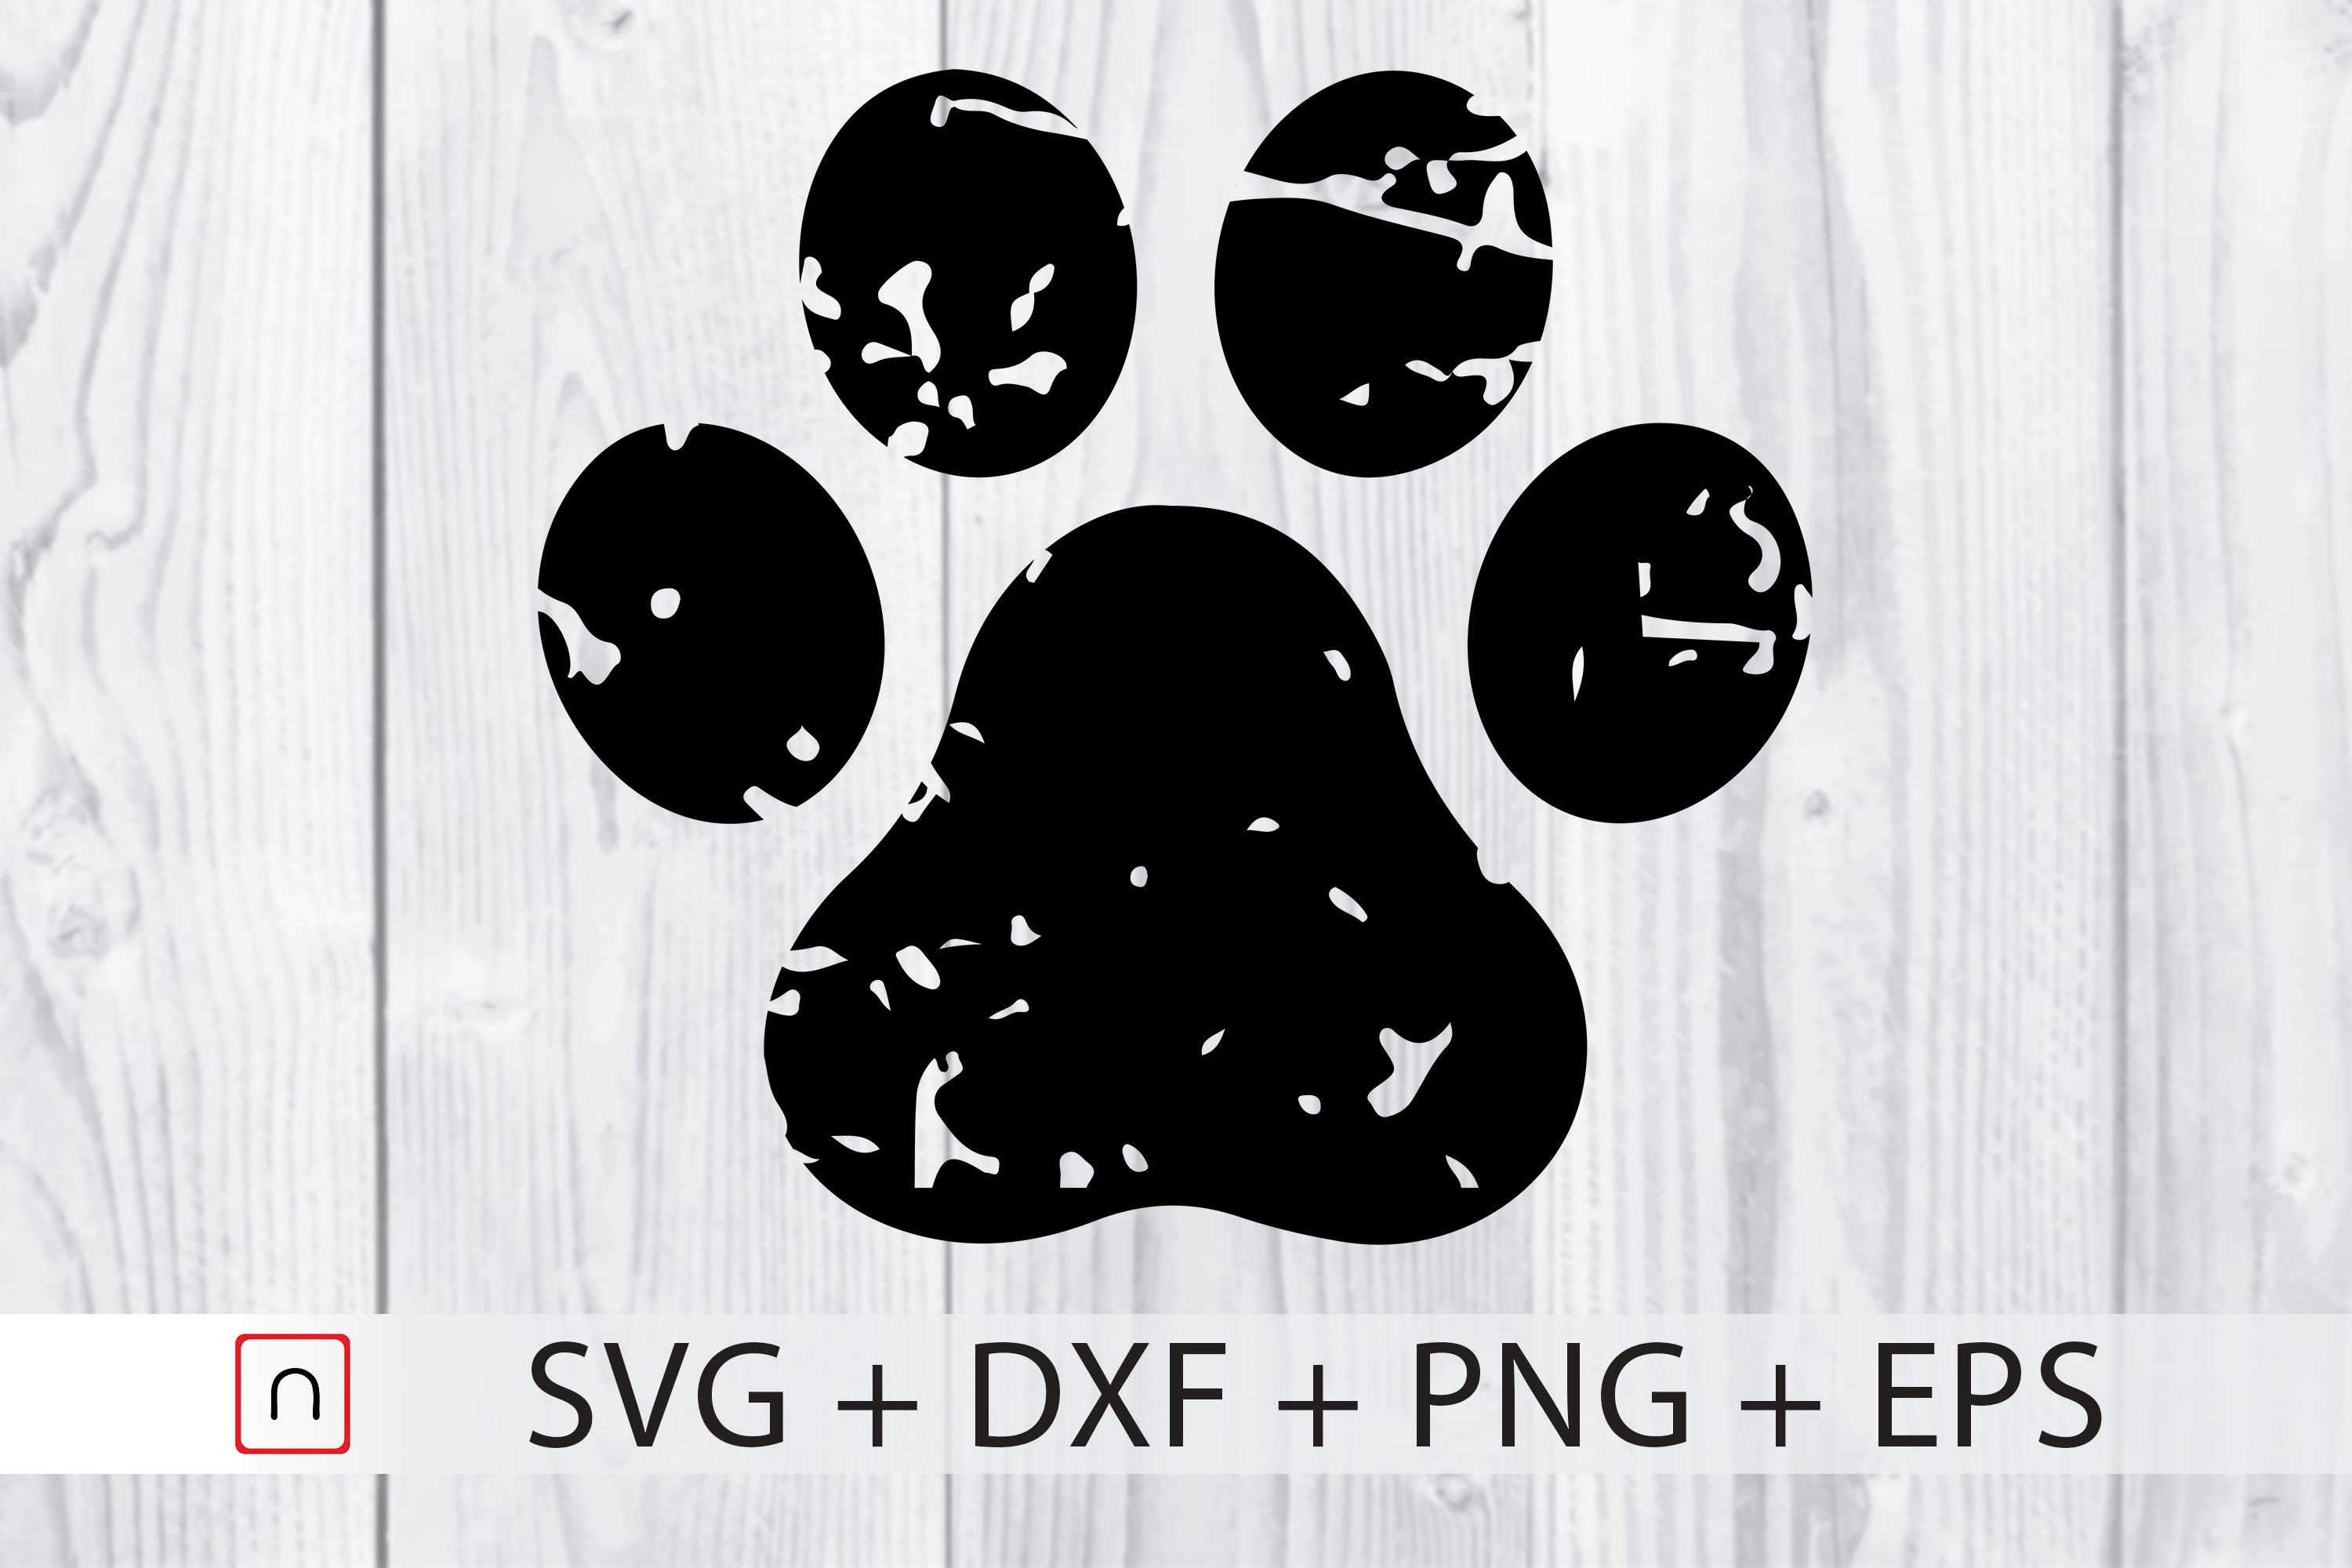 Download Free Paw Distressed Dog Cricut Graphic By Novalia Creative Fabrica for Cricut Explore, Silhouette and other cutting machines.